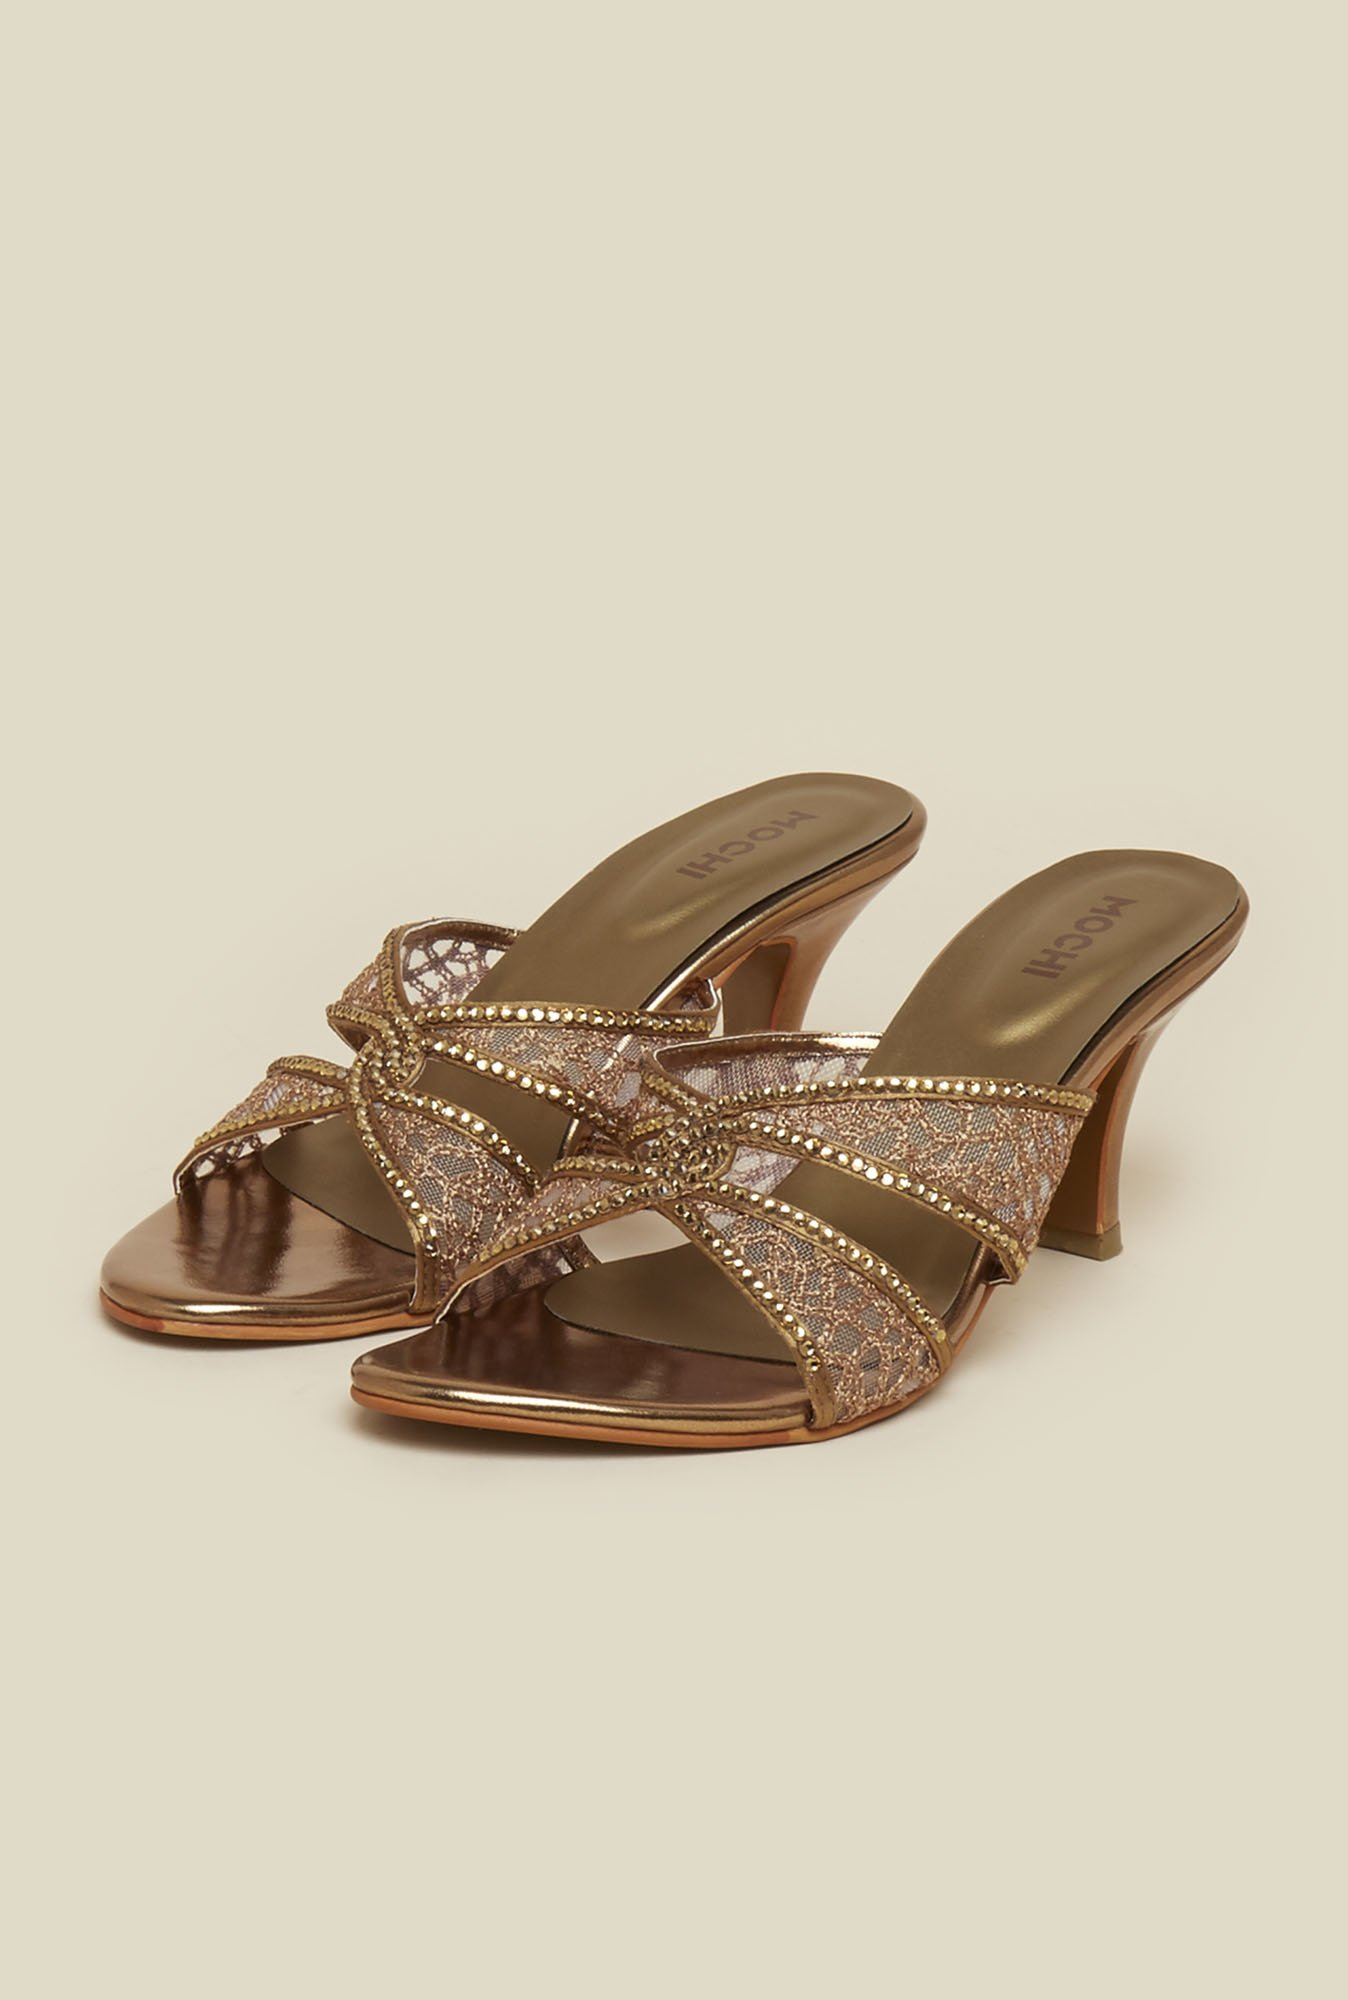 Mochi Antique Gold Ethnic Sandals